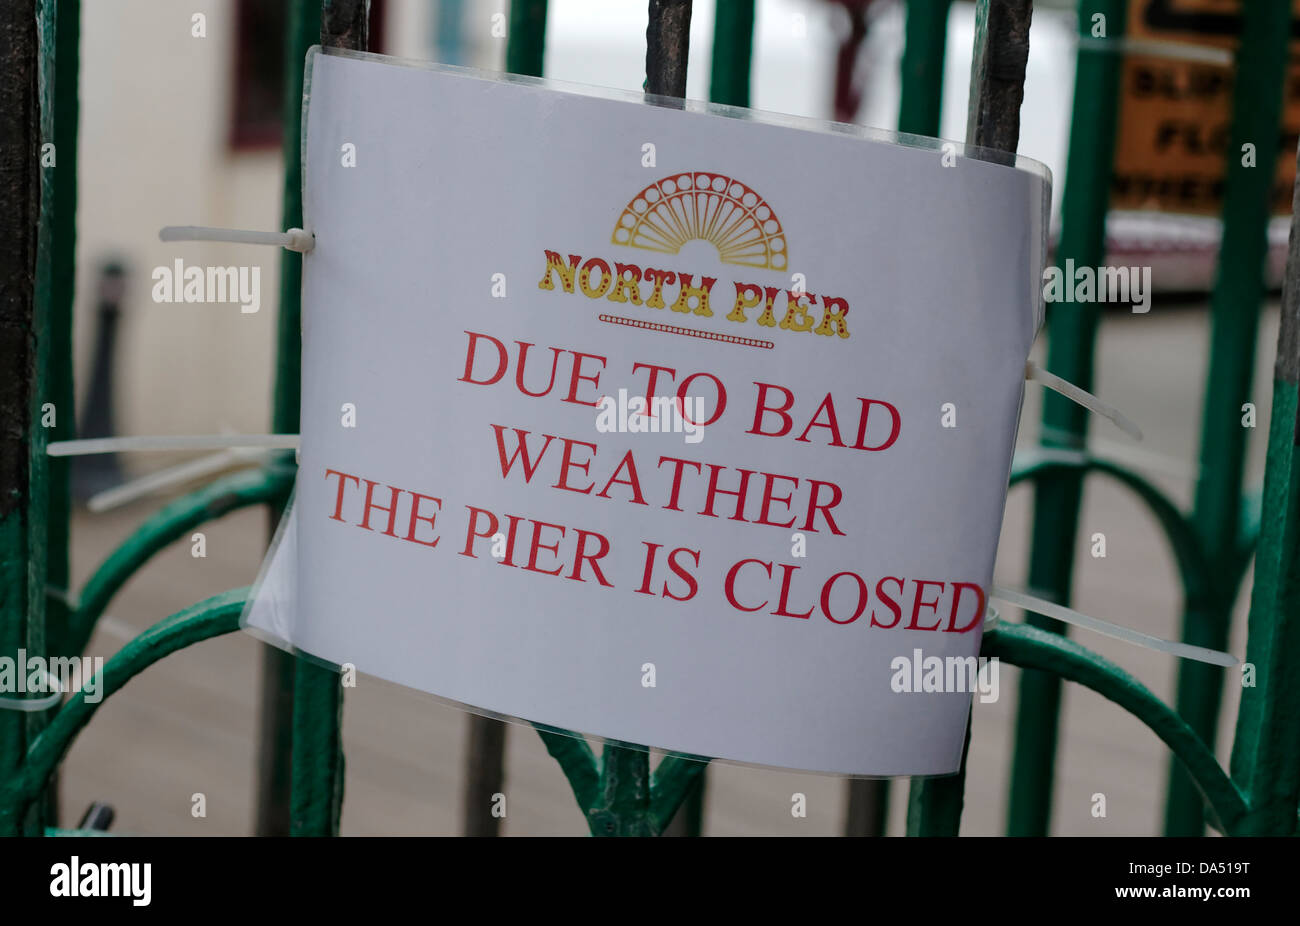 Pier Closed sign due to bad weather, out of season in Blackpool - Stock Image